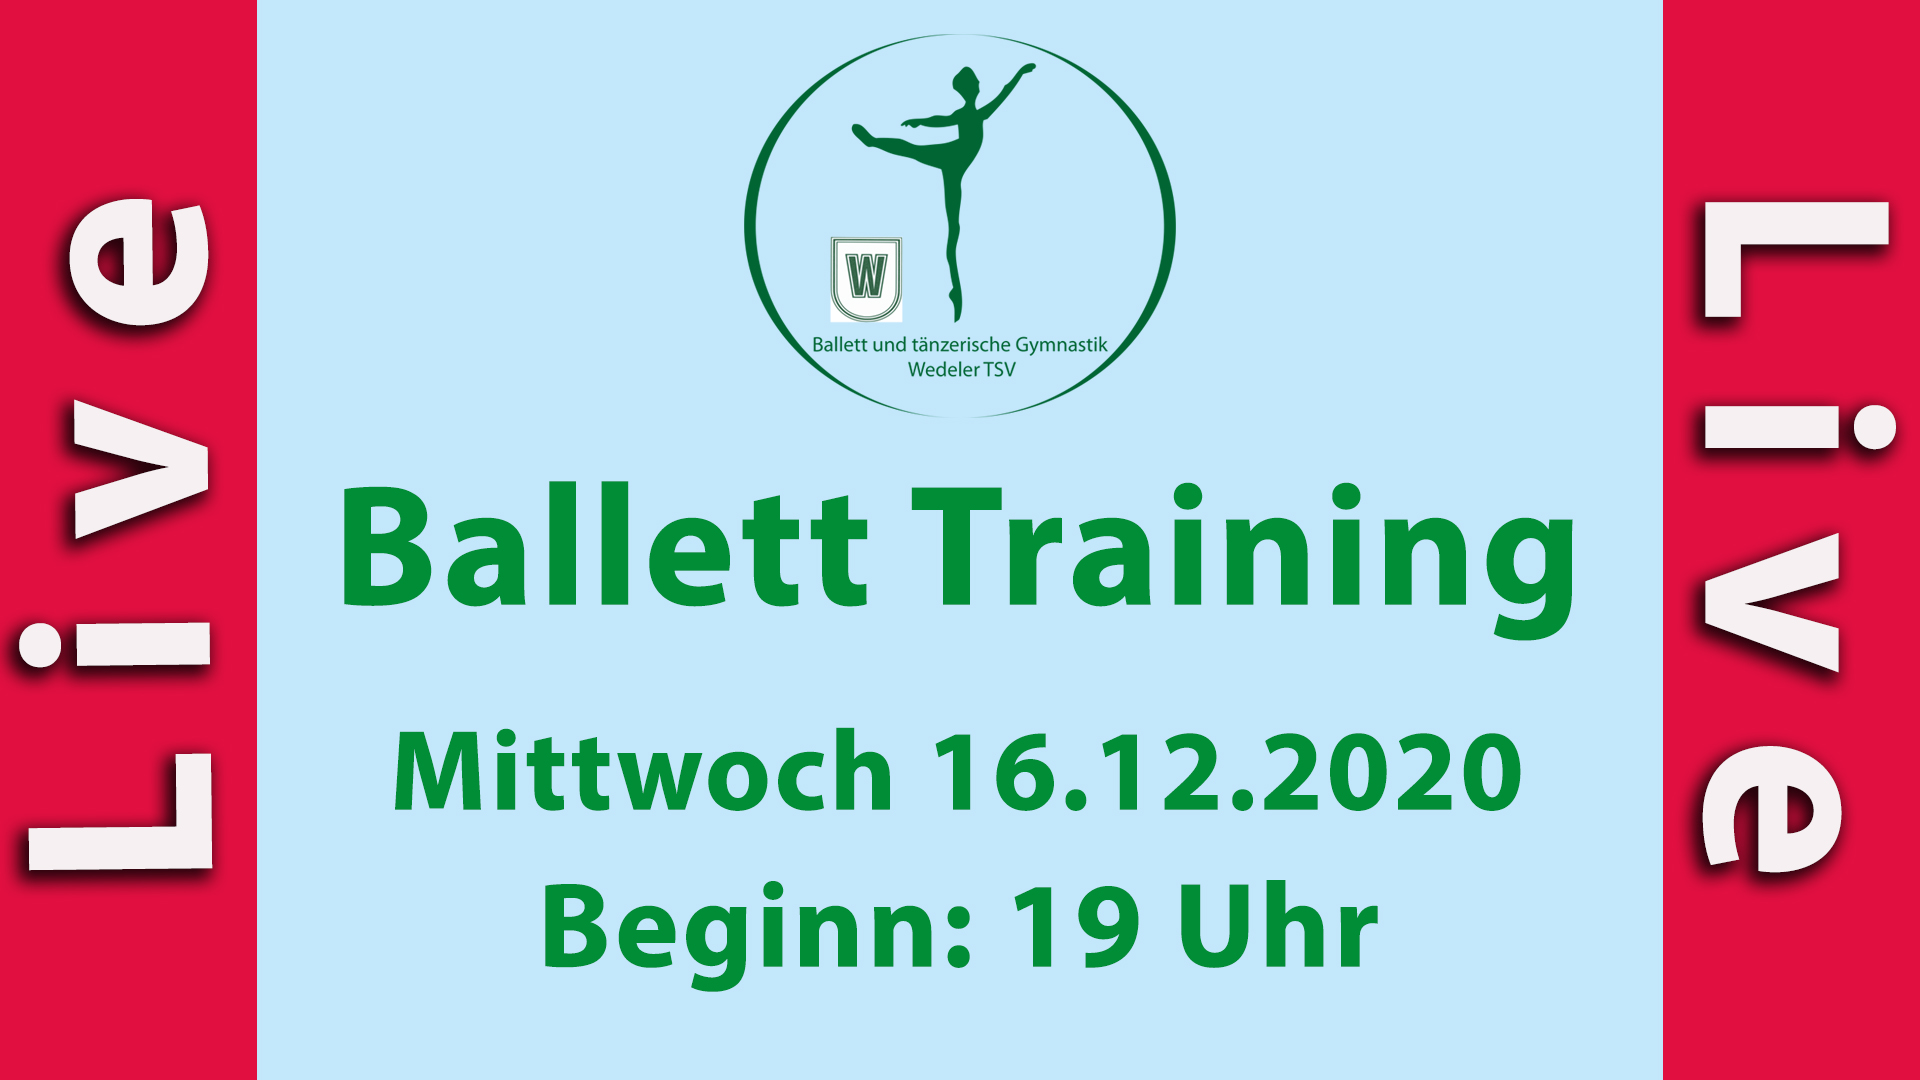 Ballett Training Mi 16.12.2020 LIVESTREAM